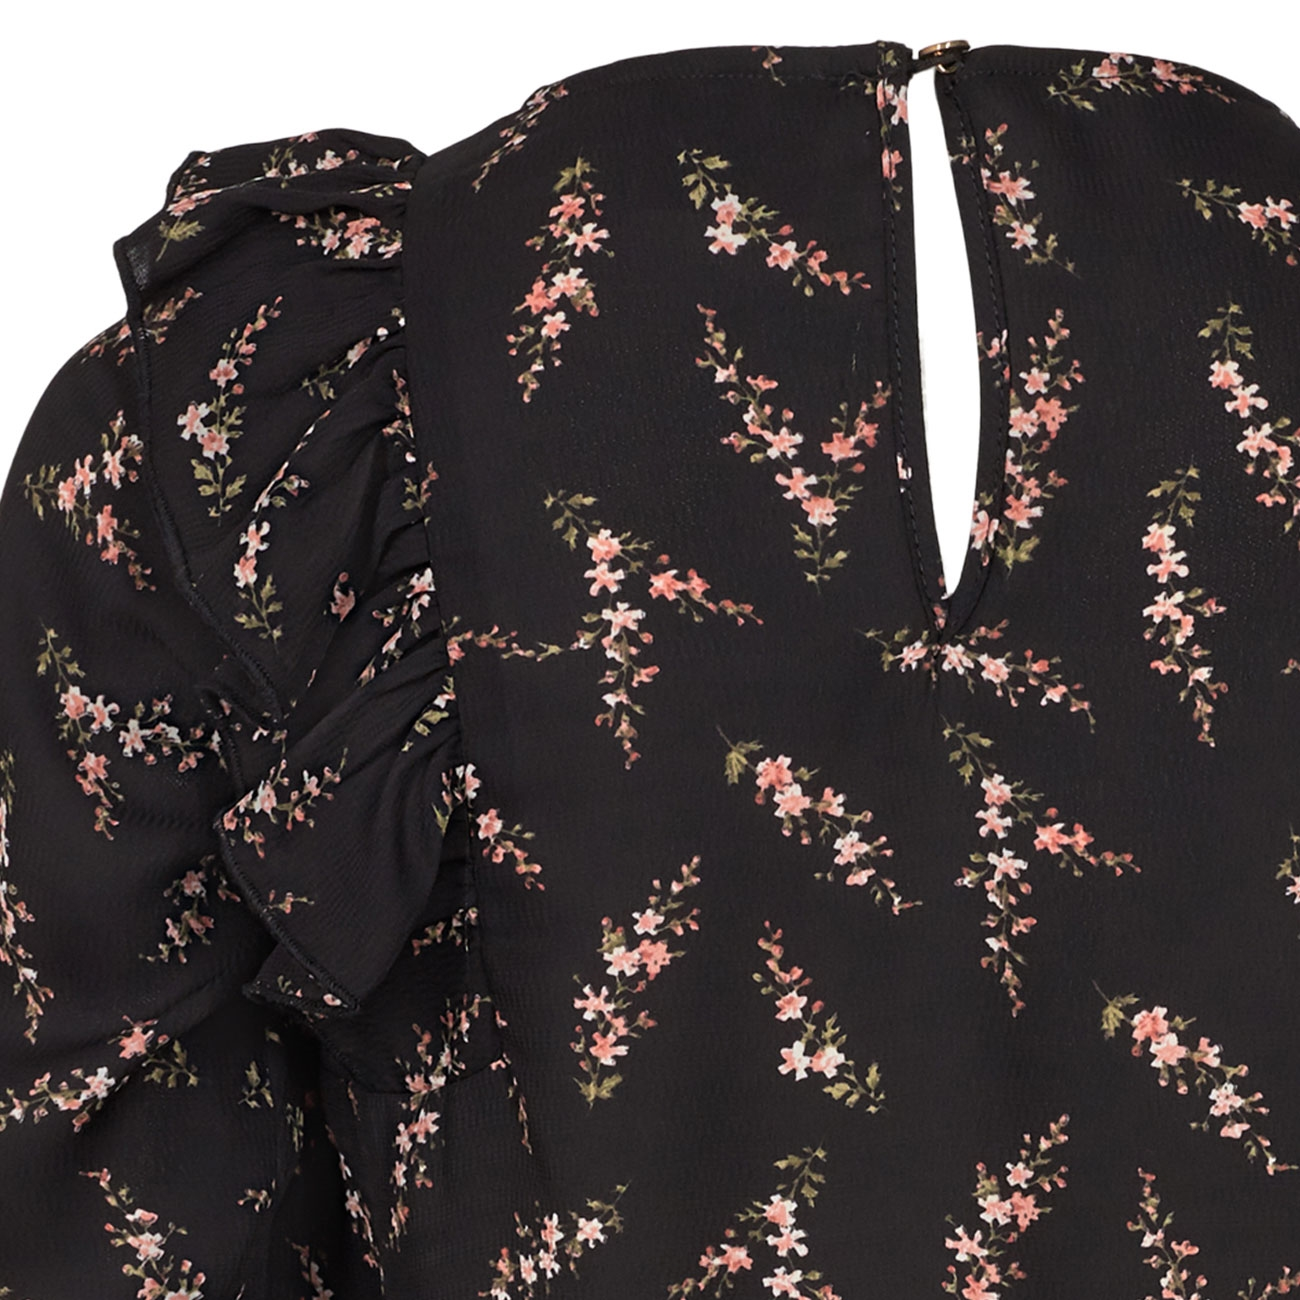 Petit-by-Sofie-Schnoor-shirt-bluse-sort-black-blomster-flowers-rose-rosa